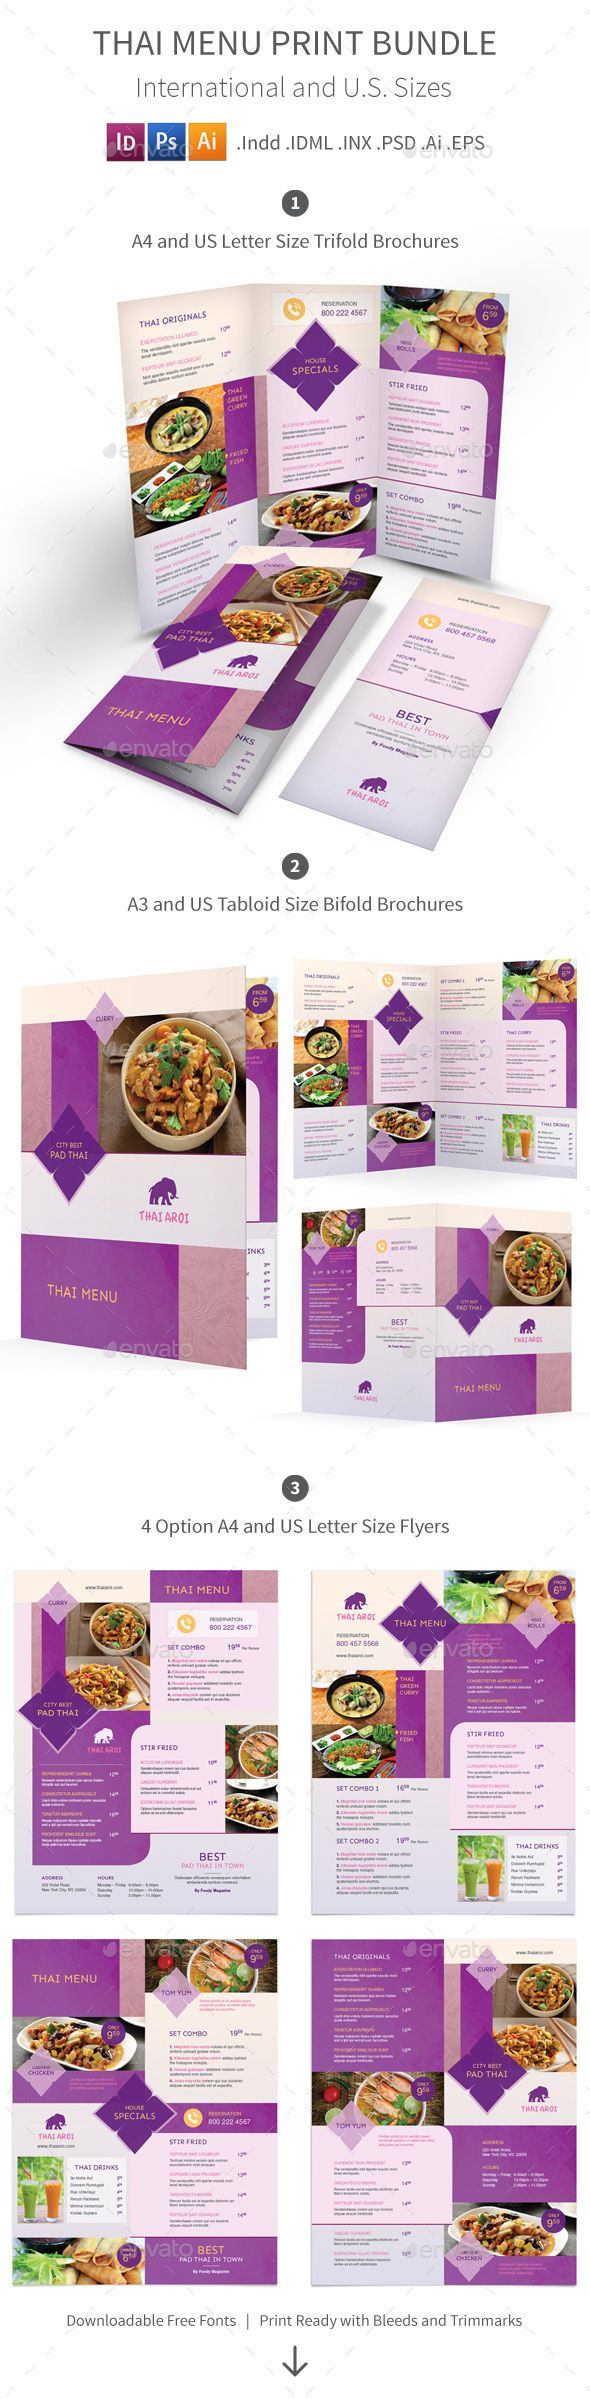 Thai Restaurant Menu Design Print Bundle 3 - Food Menu Template PSD, InDesign INDD, Vector EPS, Vector AI. Download here: http://graphicriver.net/item/thai-restaurant-menu-print-bundle-3/16490561?s_rank=244&ref=yinkira